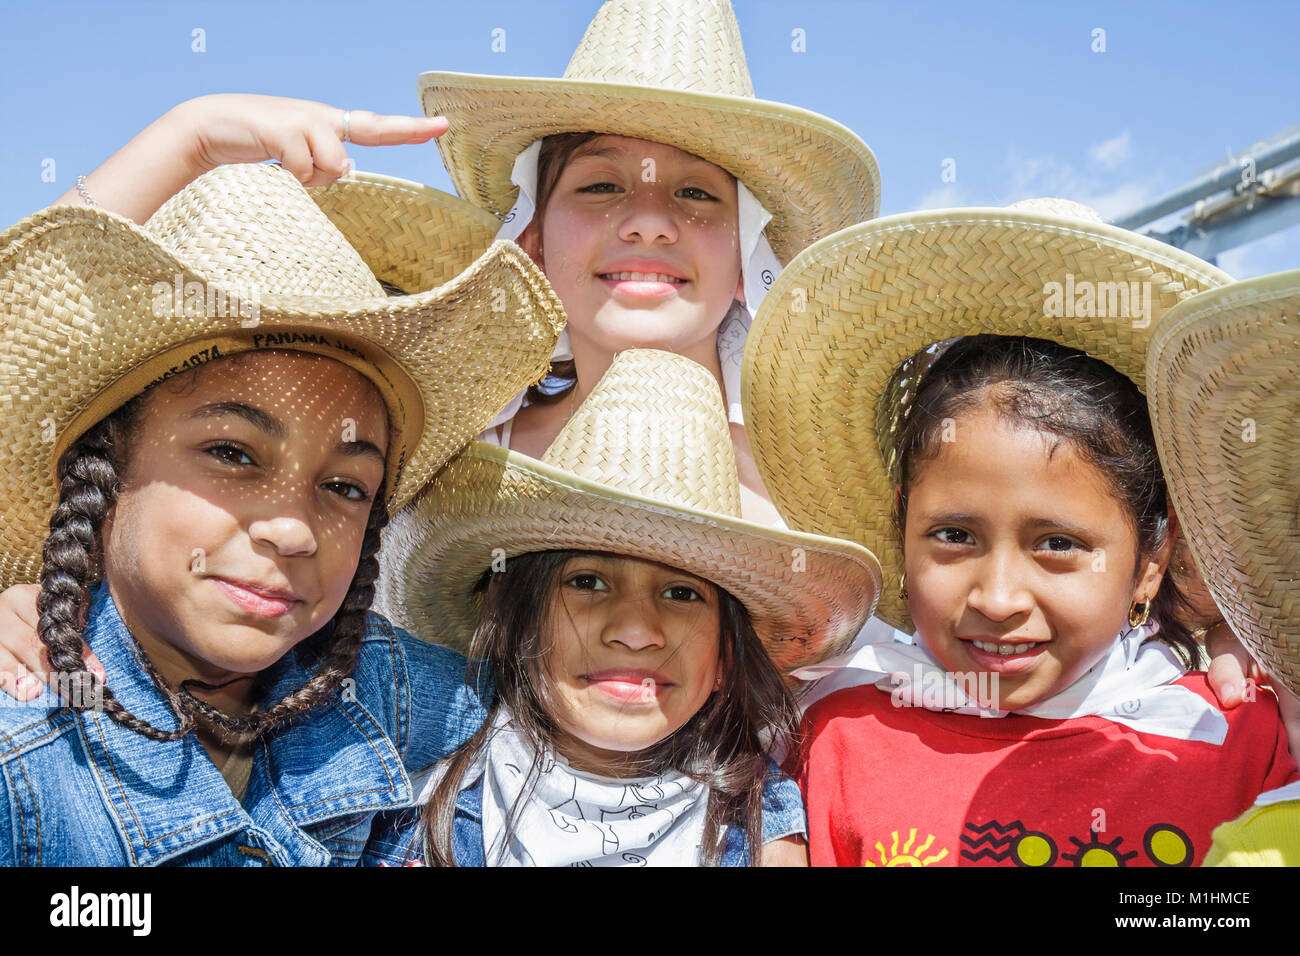 tradition Hispanic girls Mexican hats bandanas Western attire outfit - Stock Image